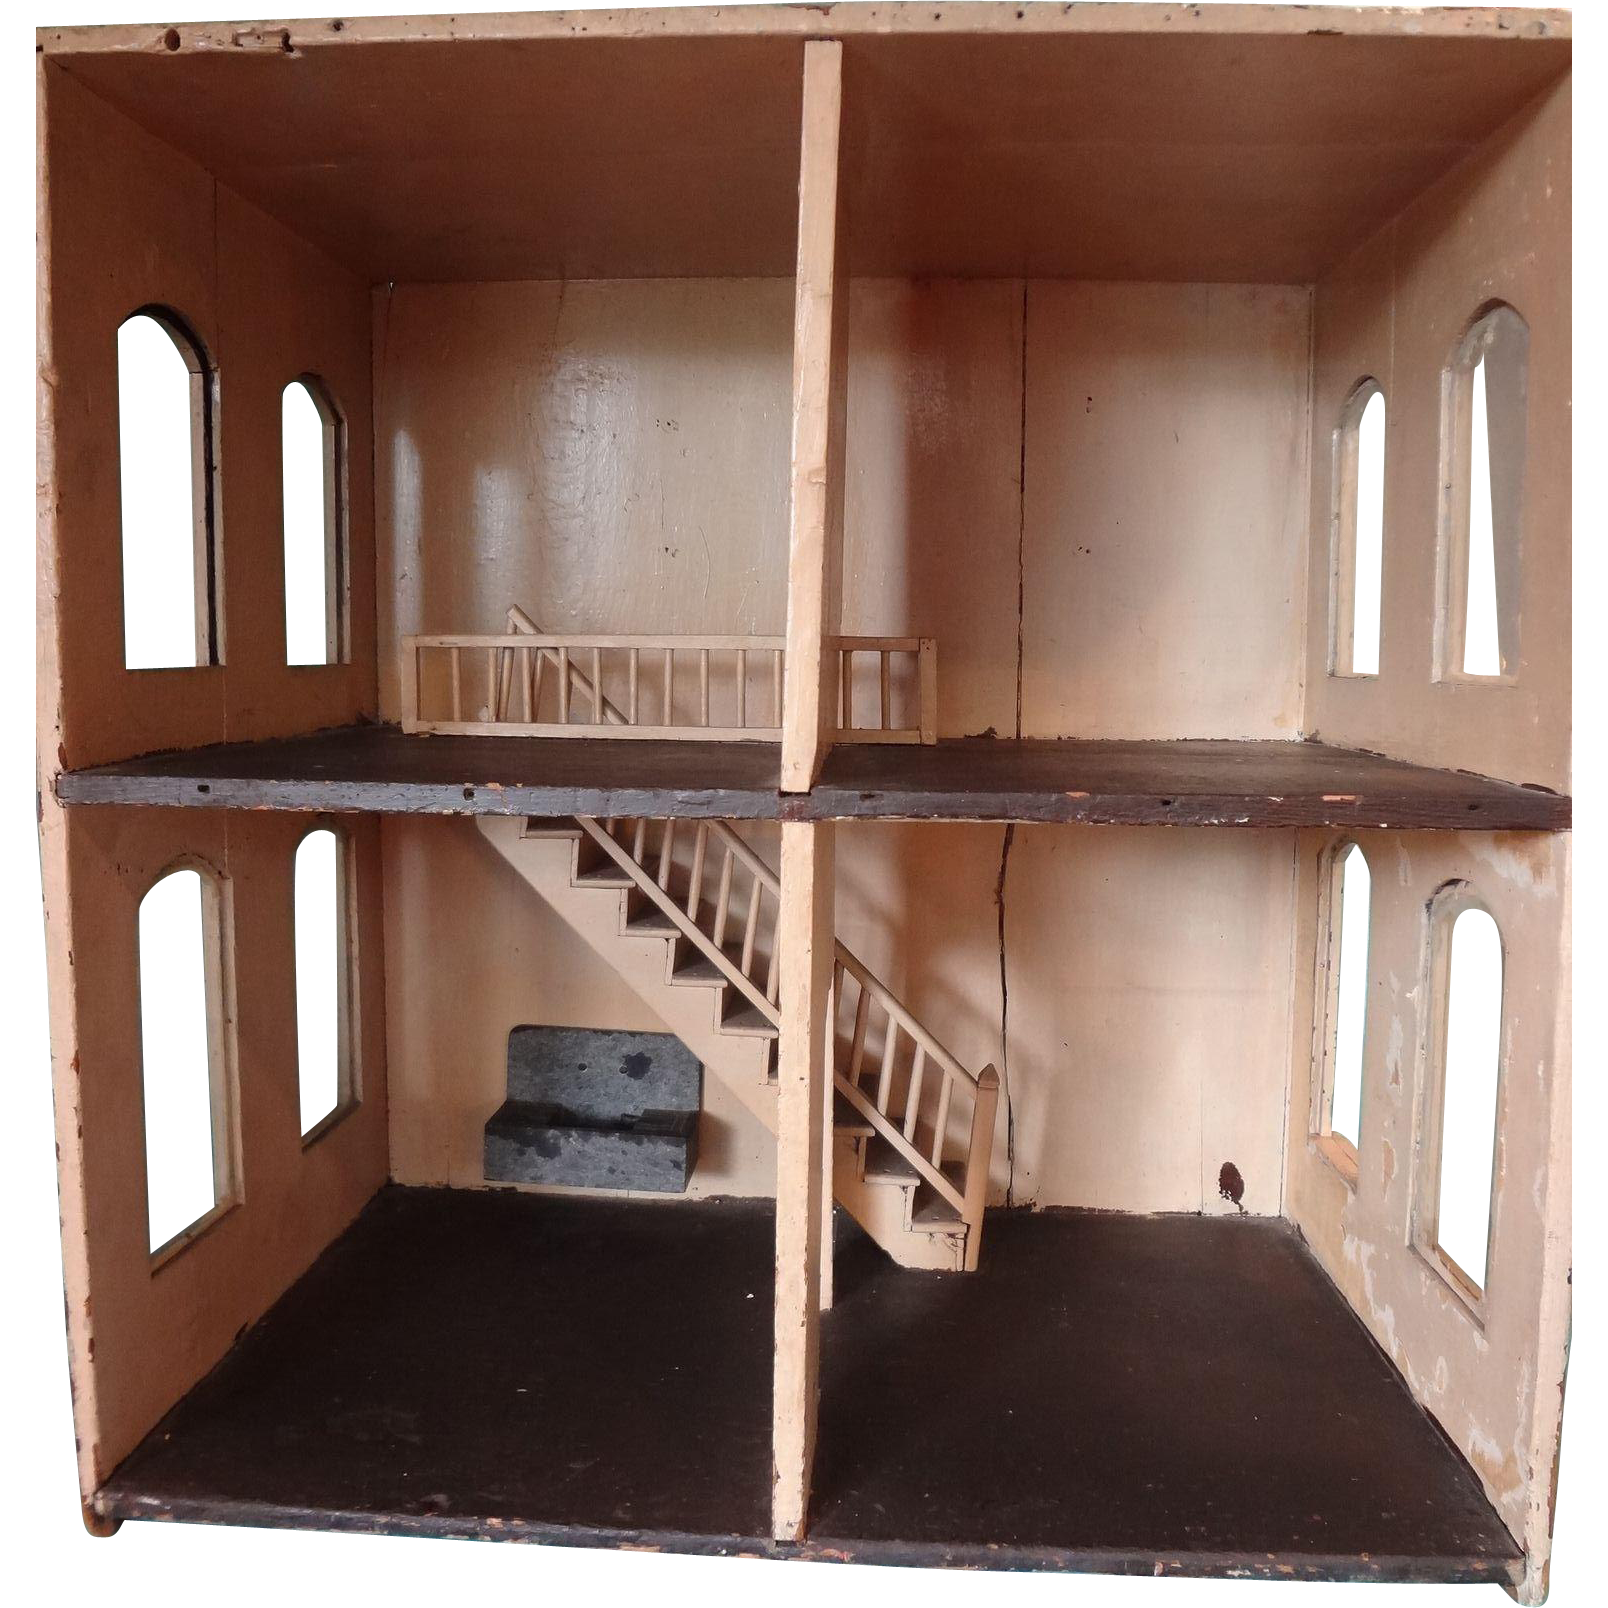 Antique Four Room Doll House With Interior Stairs And Arched Windows